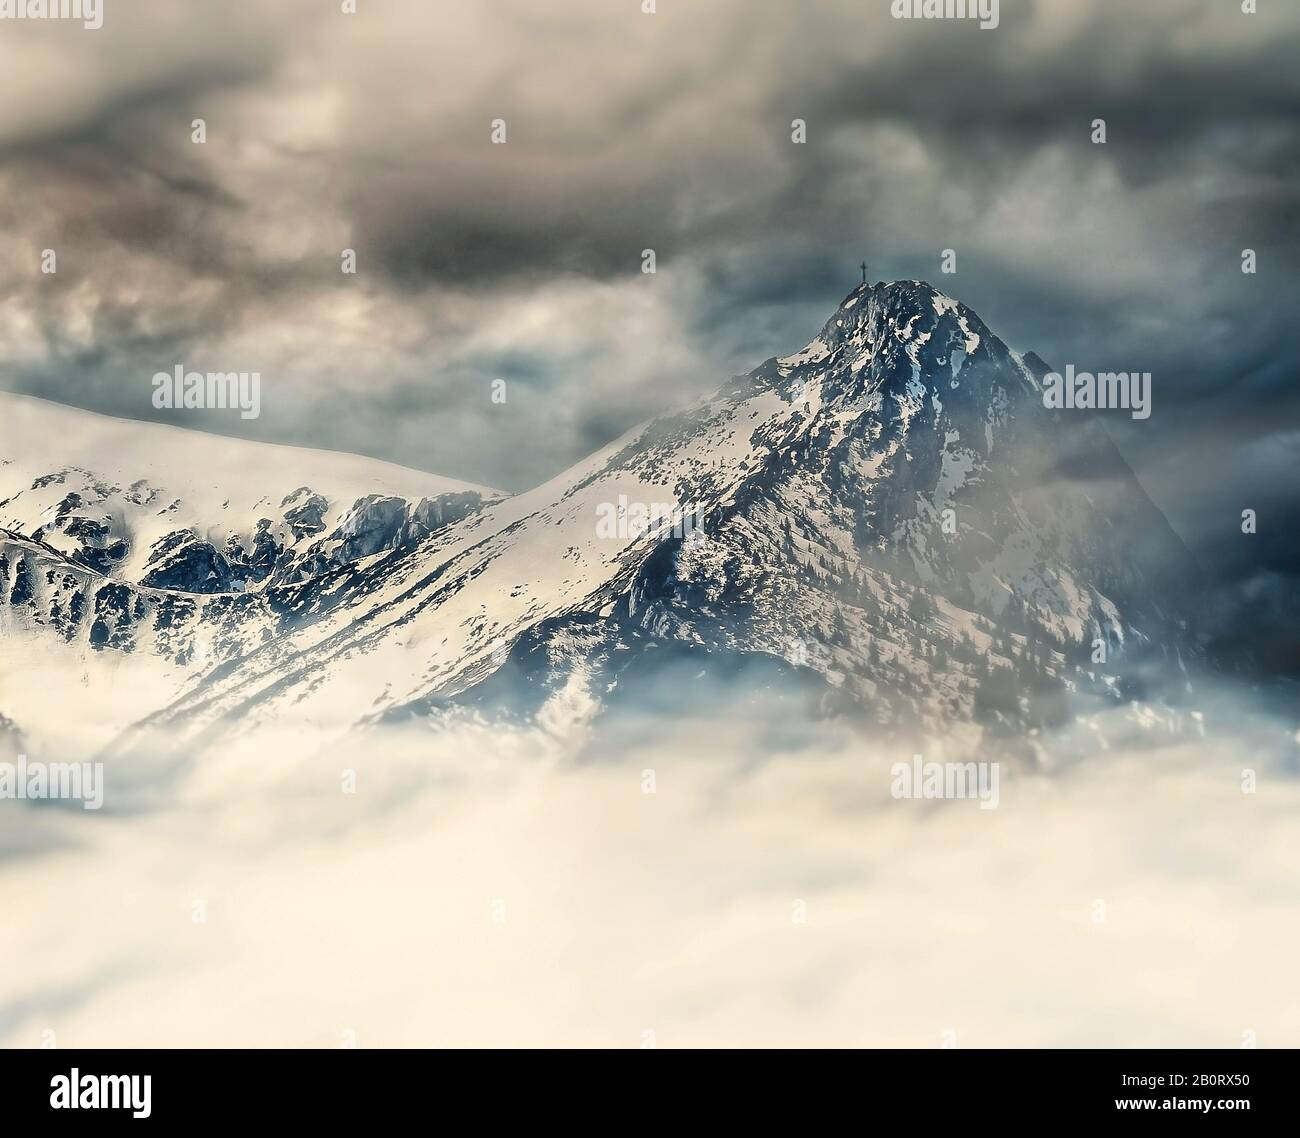 snow-capped peaks and a windy day in the Tatras Polish mountains Stock Photo